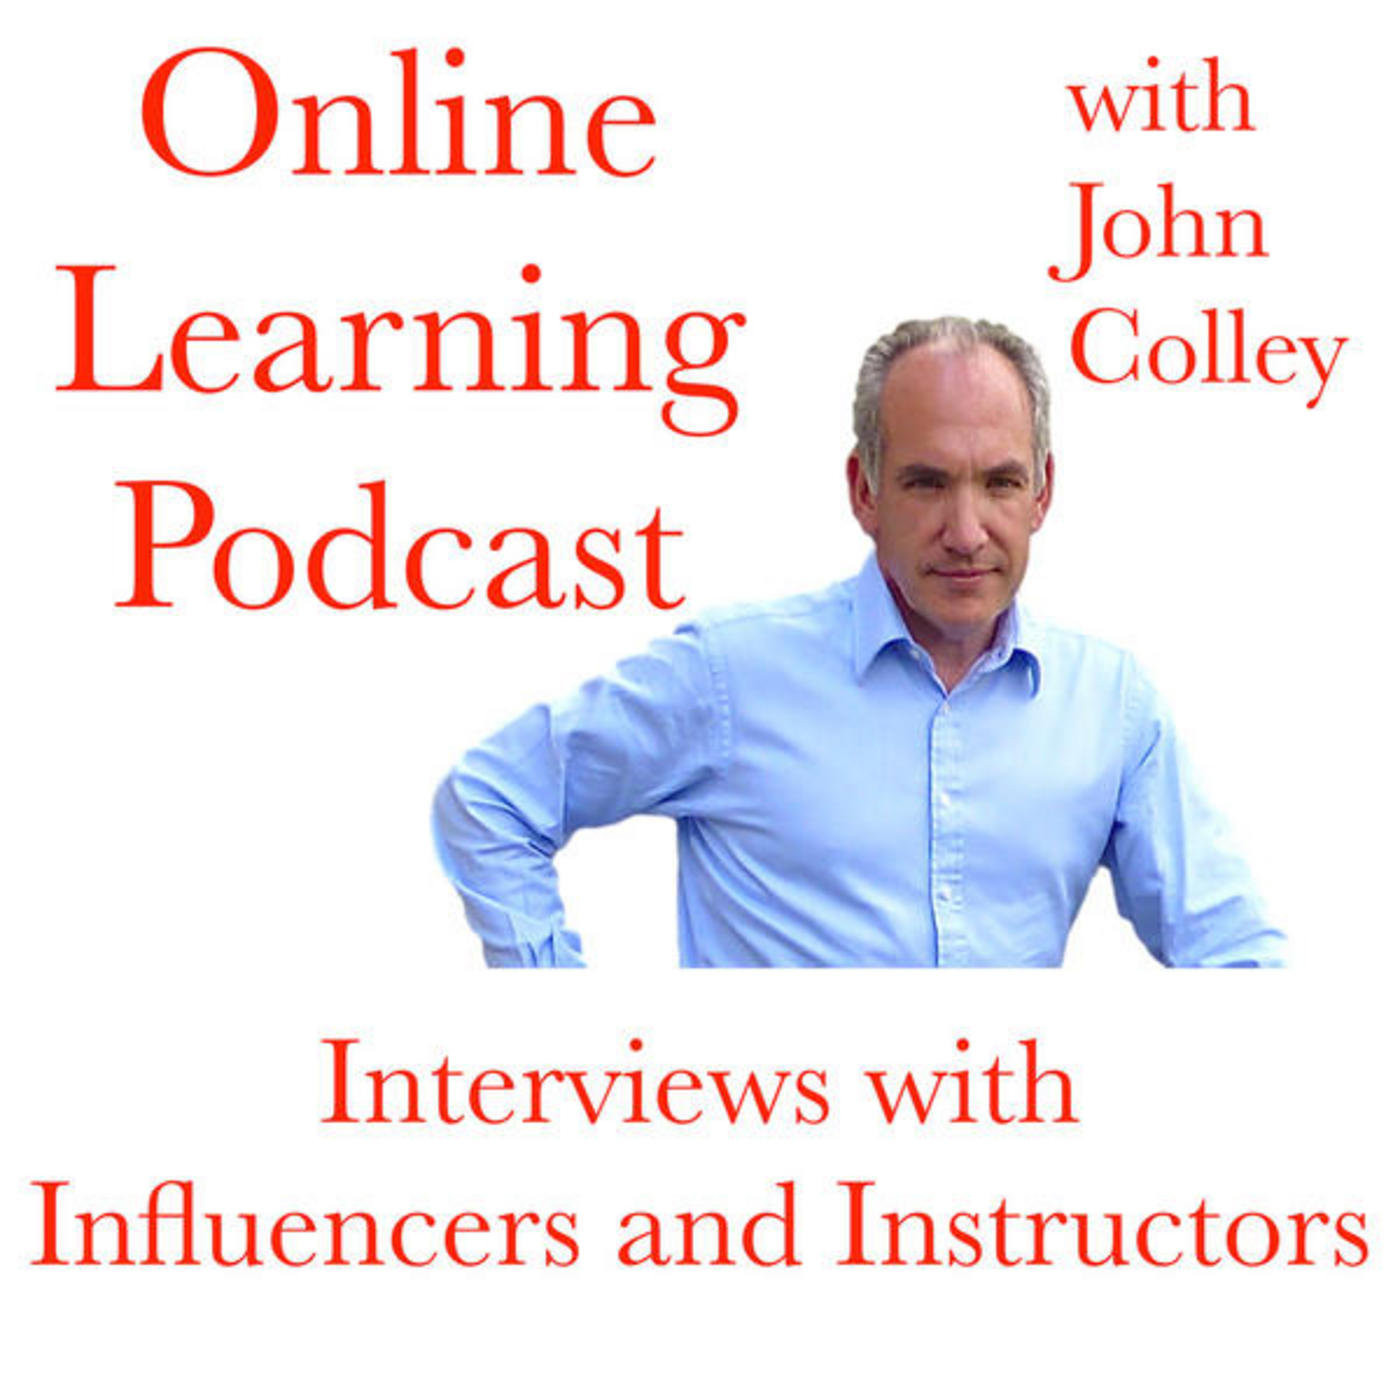 063 10 Must Have Apps for the Innovative Educator w/ Karina Barley